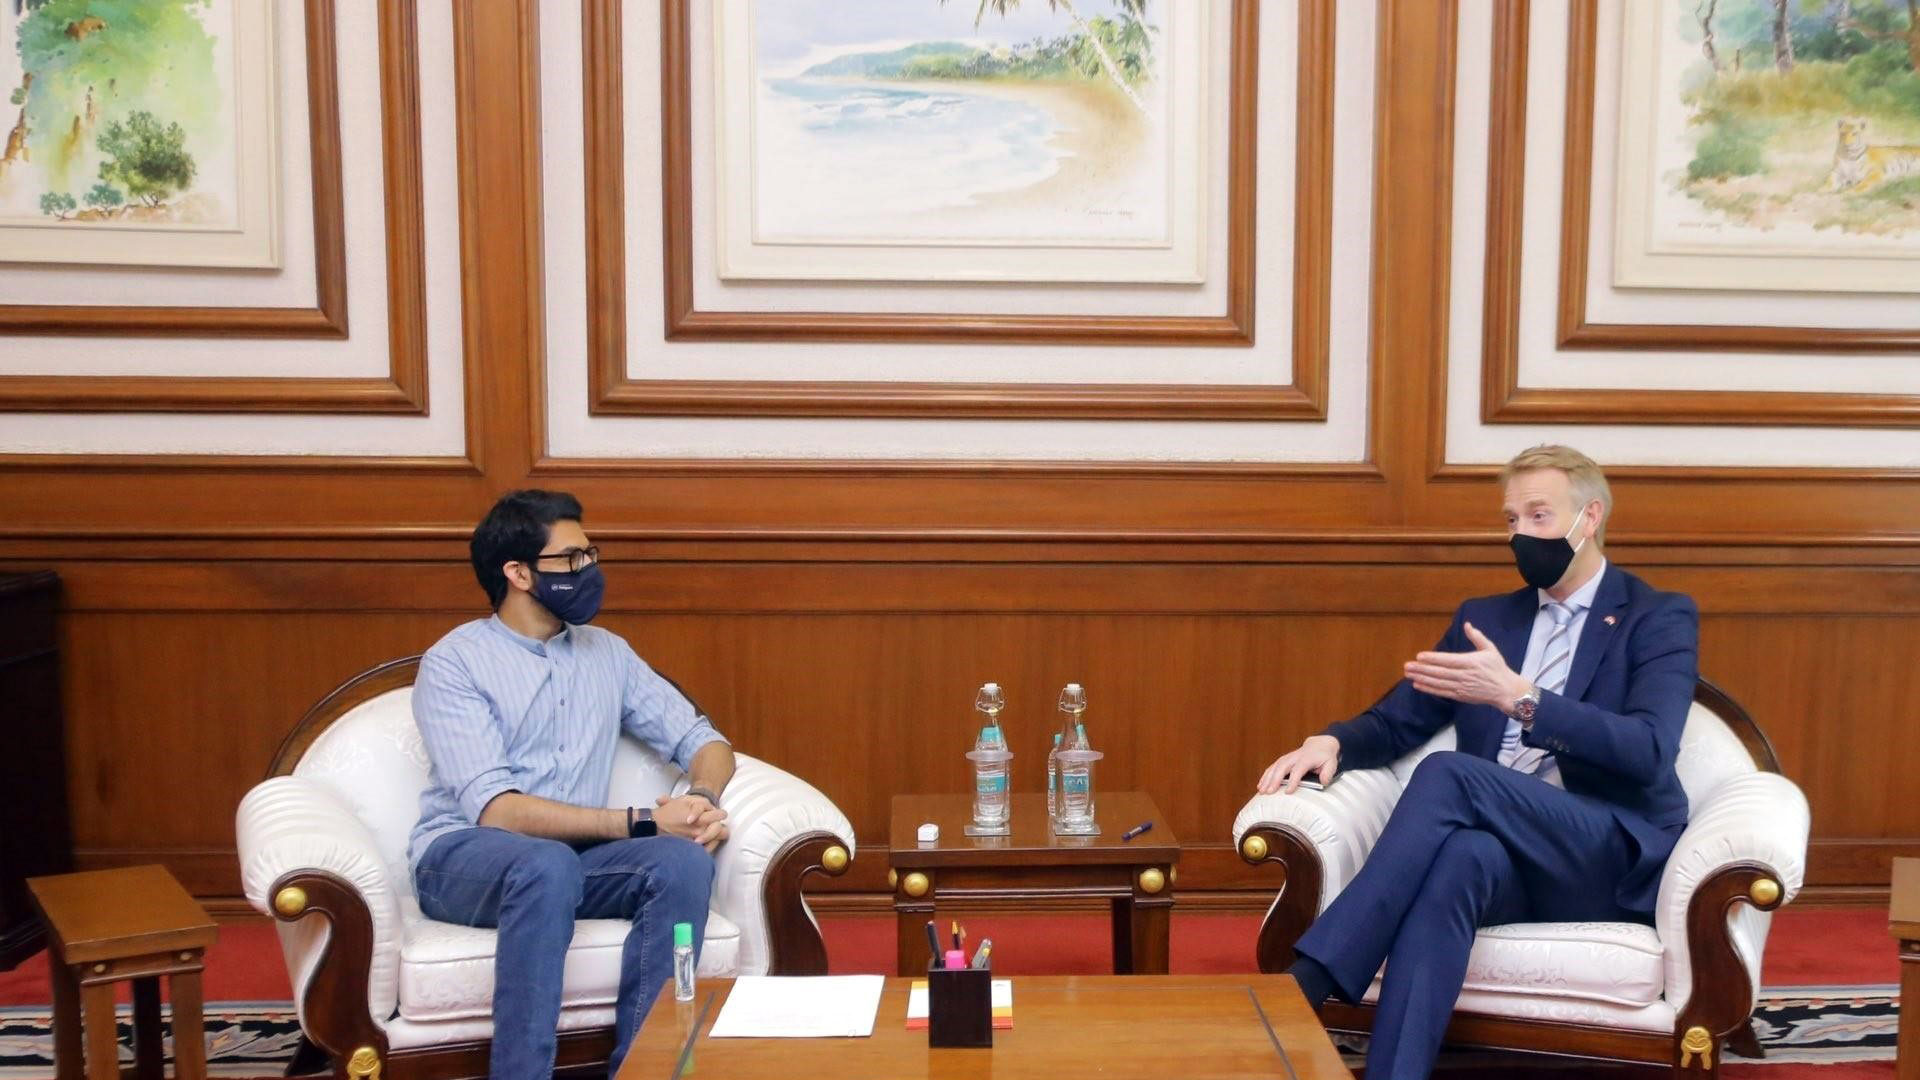 ROYAL NORWEGIAN CONSULATE GENERAL ALONG WITH NORWEGIAN BUSINESS ASSOCIATION INDIA (NBAI) & INNOVATION NORWAY MEETS HONORABLE MINISTER, GOVERNMENT OF MAHARASHTRA,  Mr. AADITYA THACKERAY